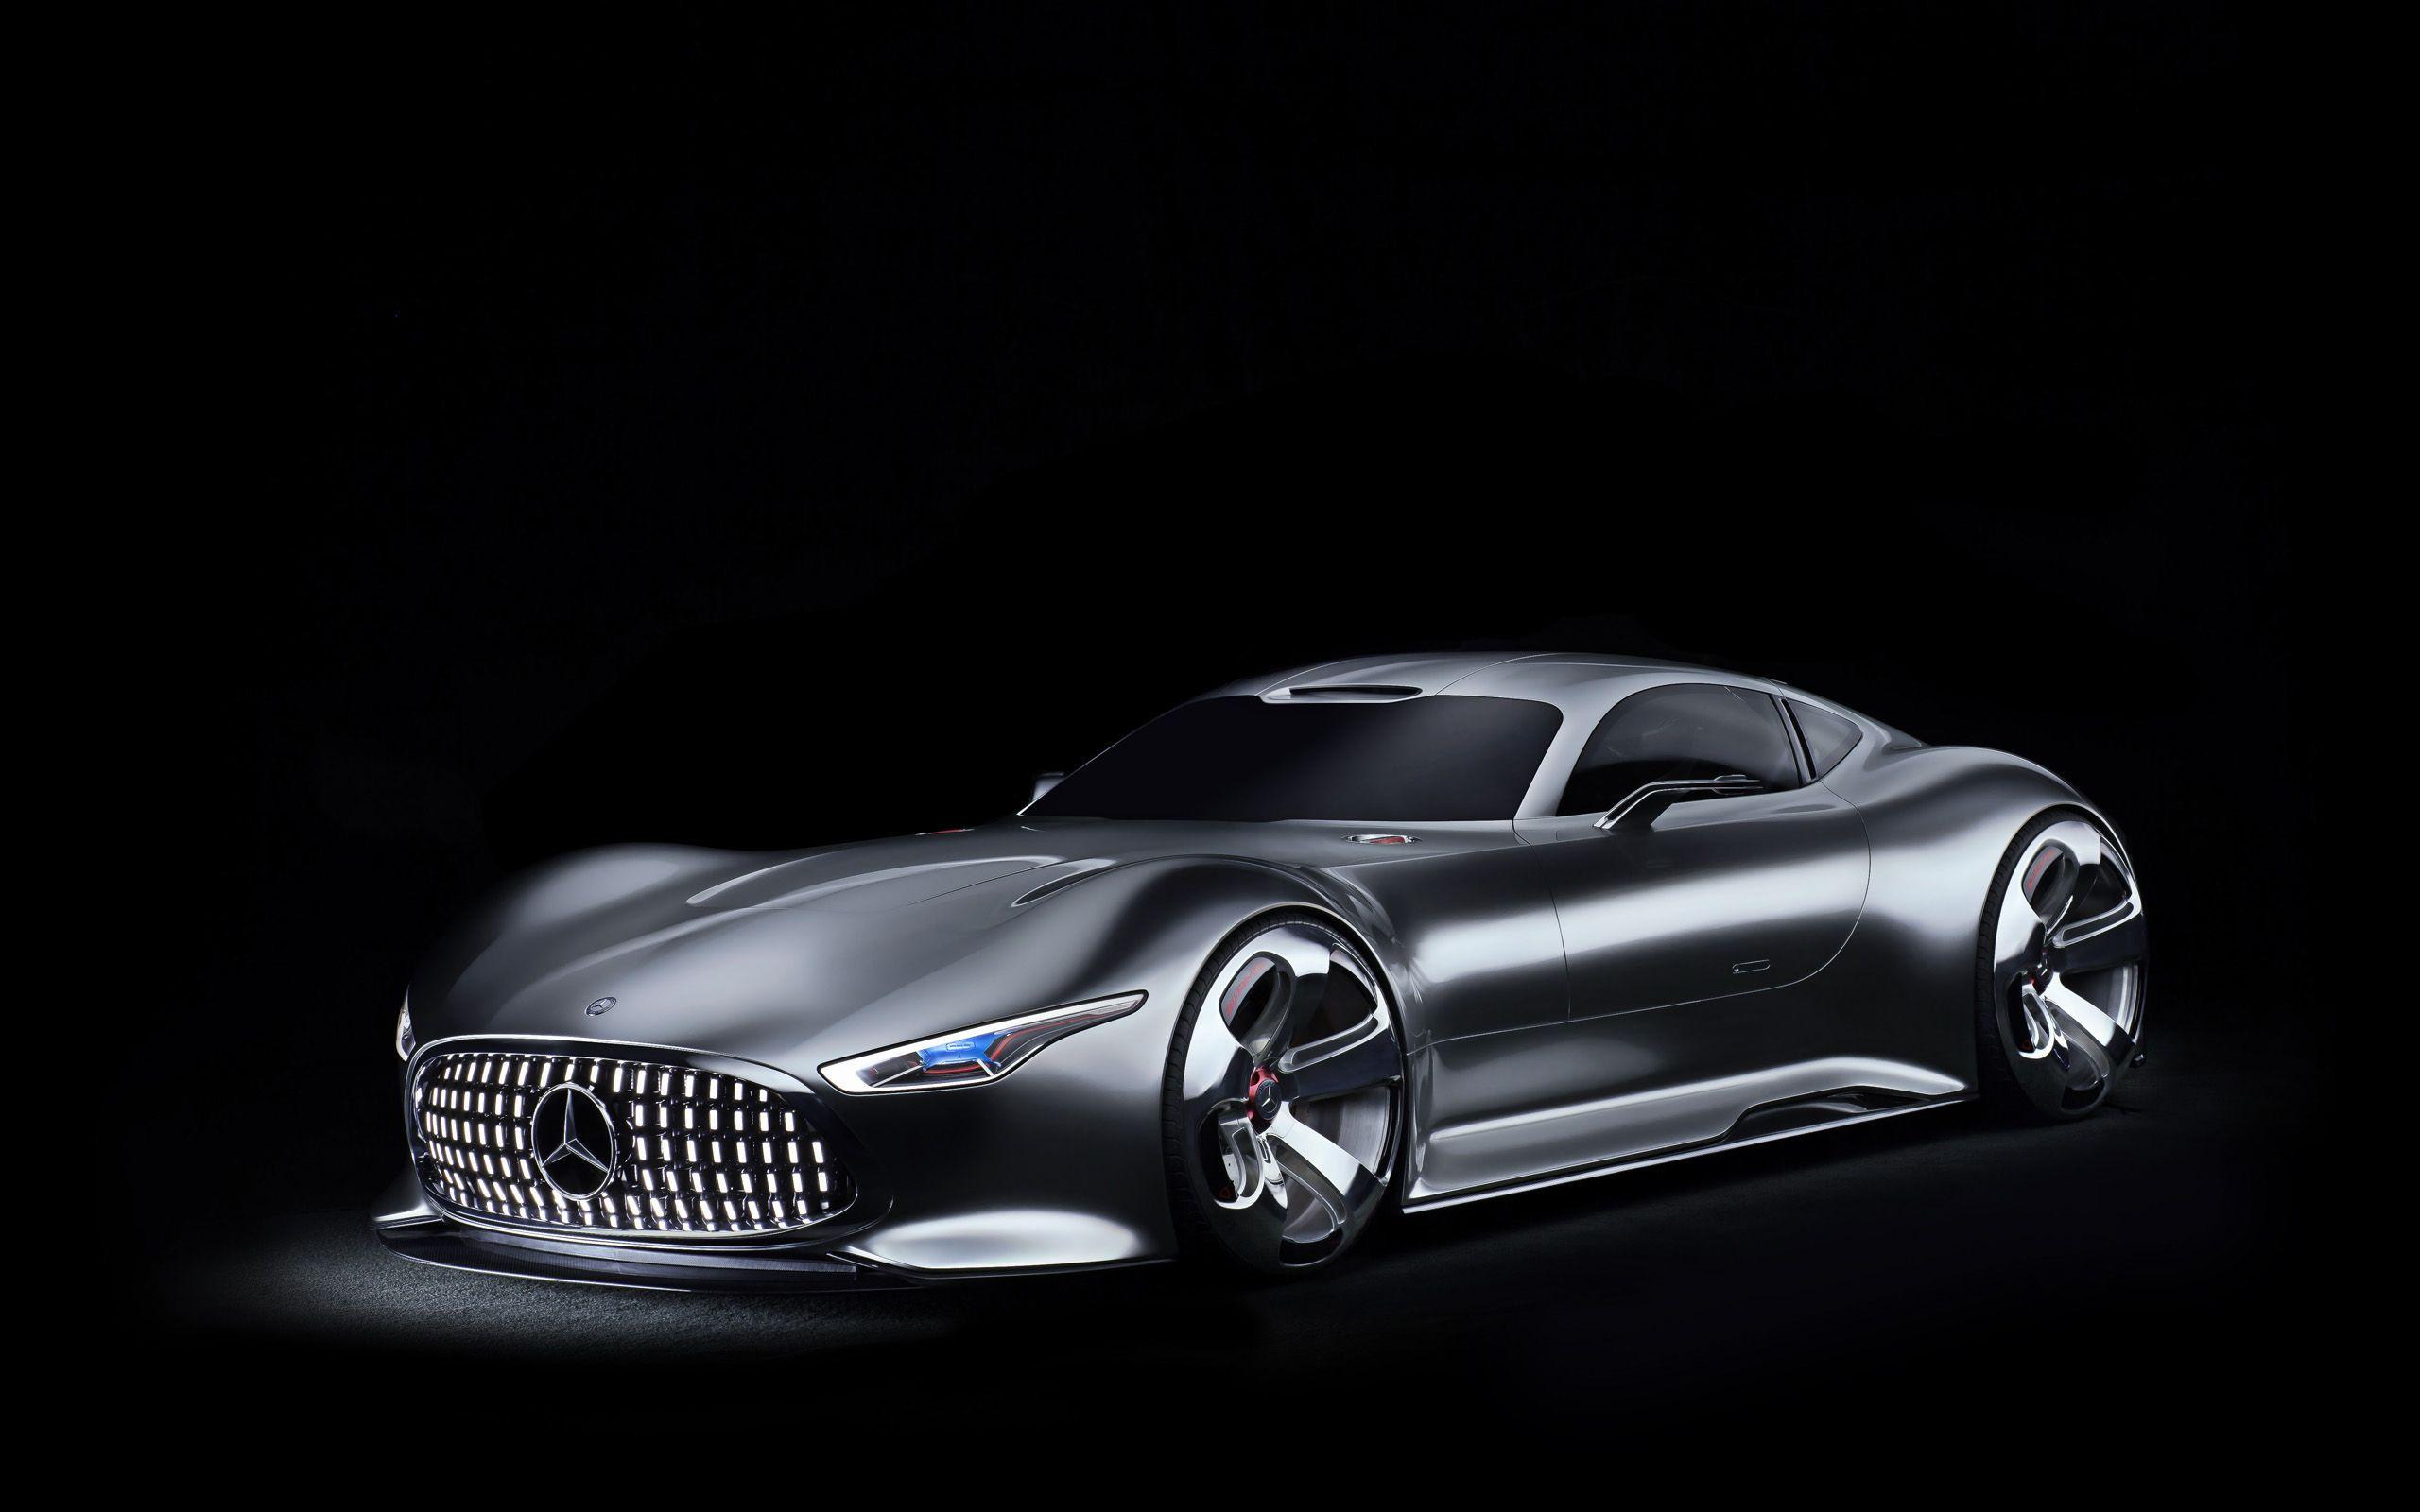 Cigarette Racing Vision GT Mercedes Benz 2014 Wallpapers